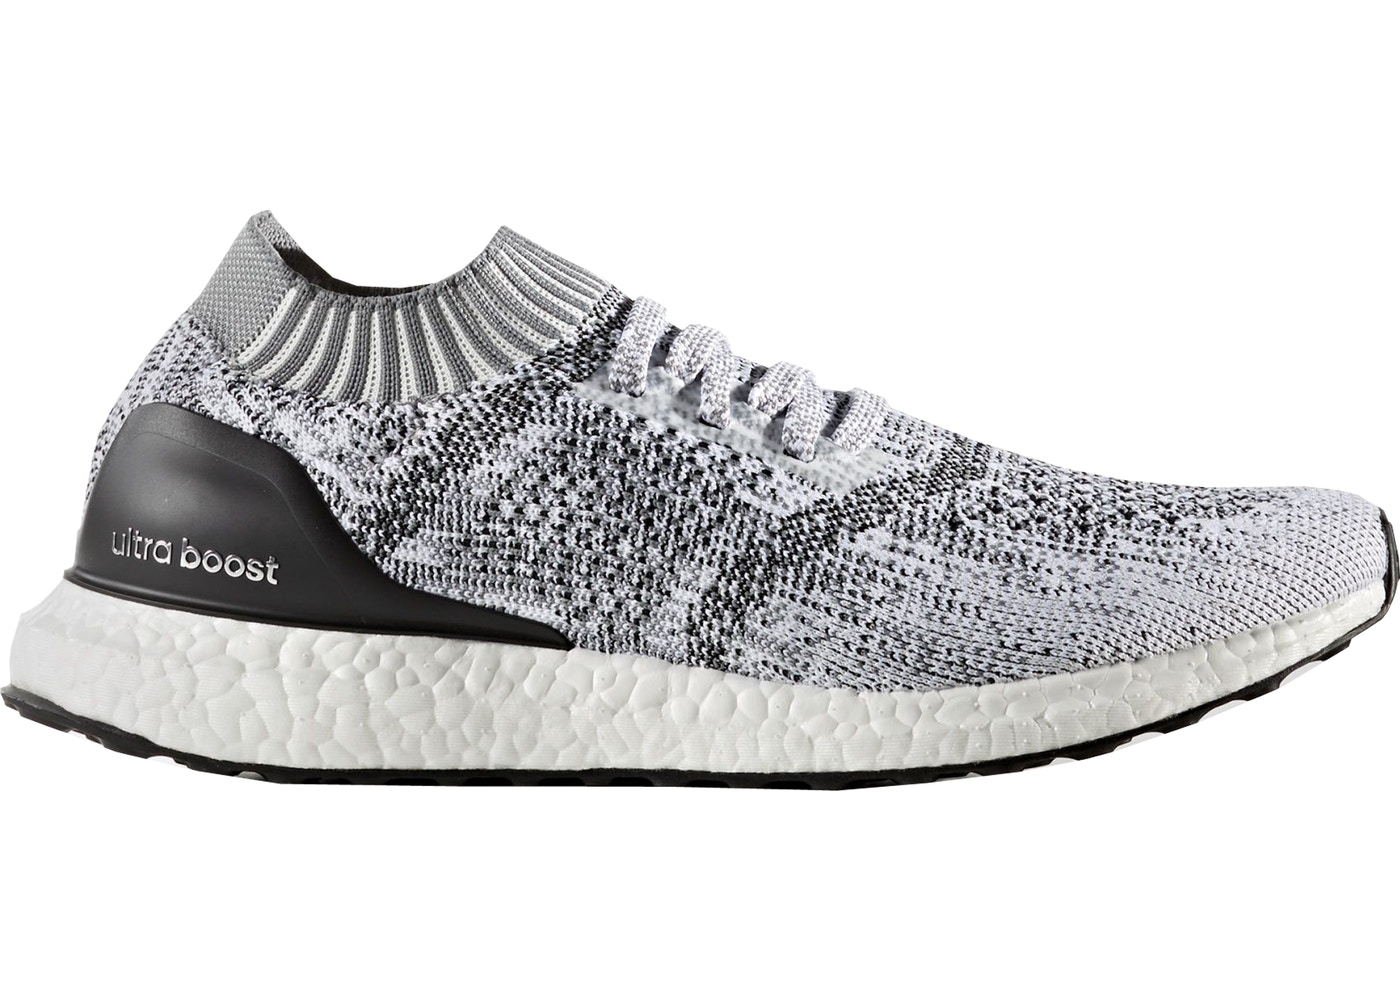 a8851ddddd2a1 adidas Ultra Boost Uncaged Oreo Black - CG4095